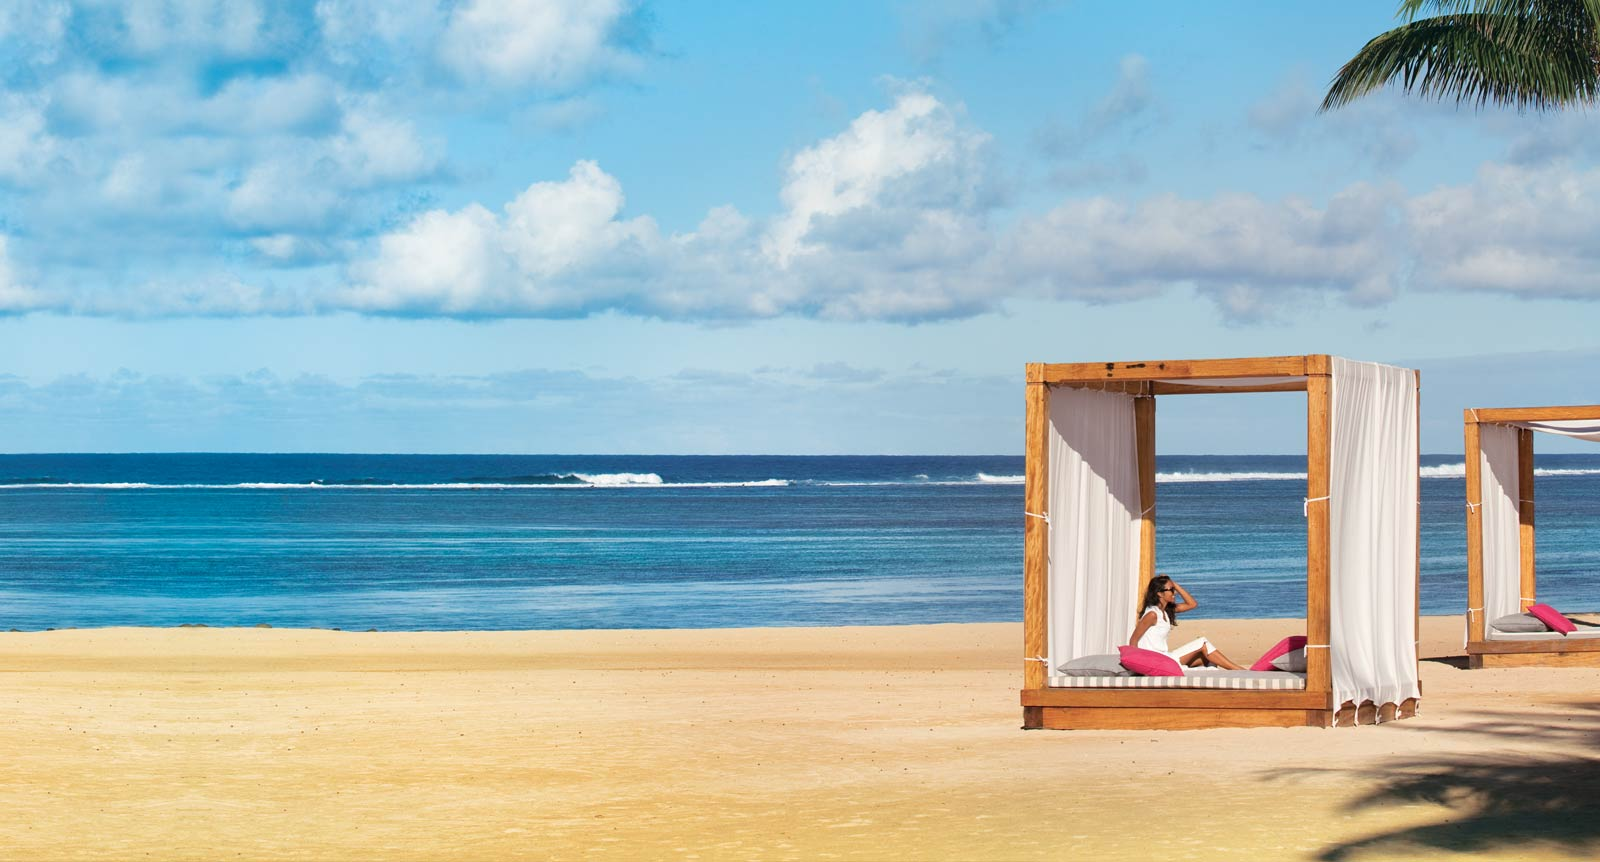 Top 25 hospitality companies in the usa global for Best beach vacations usa